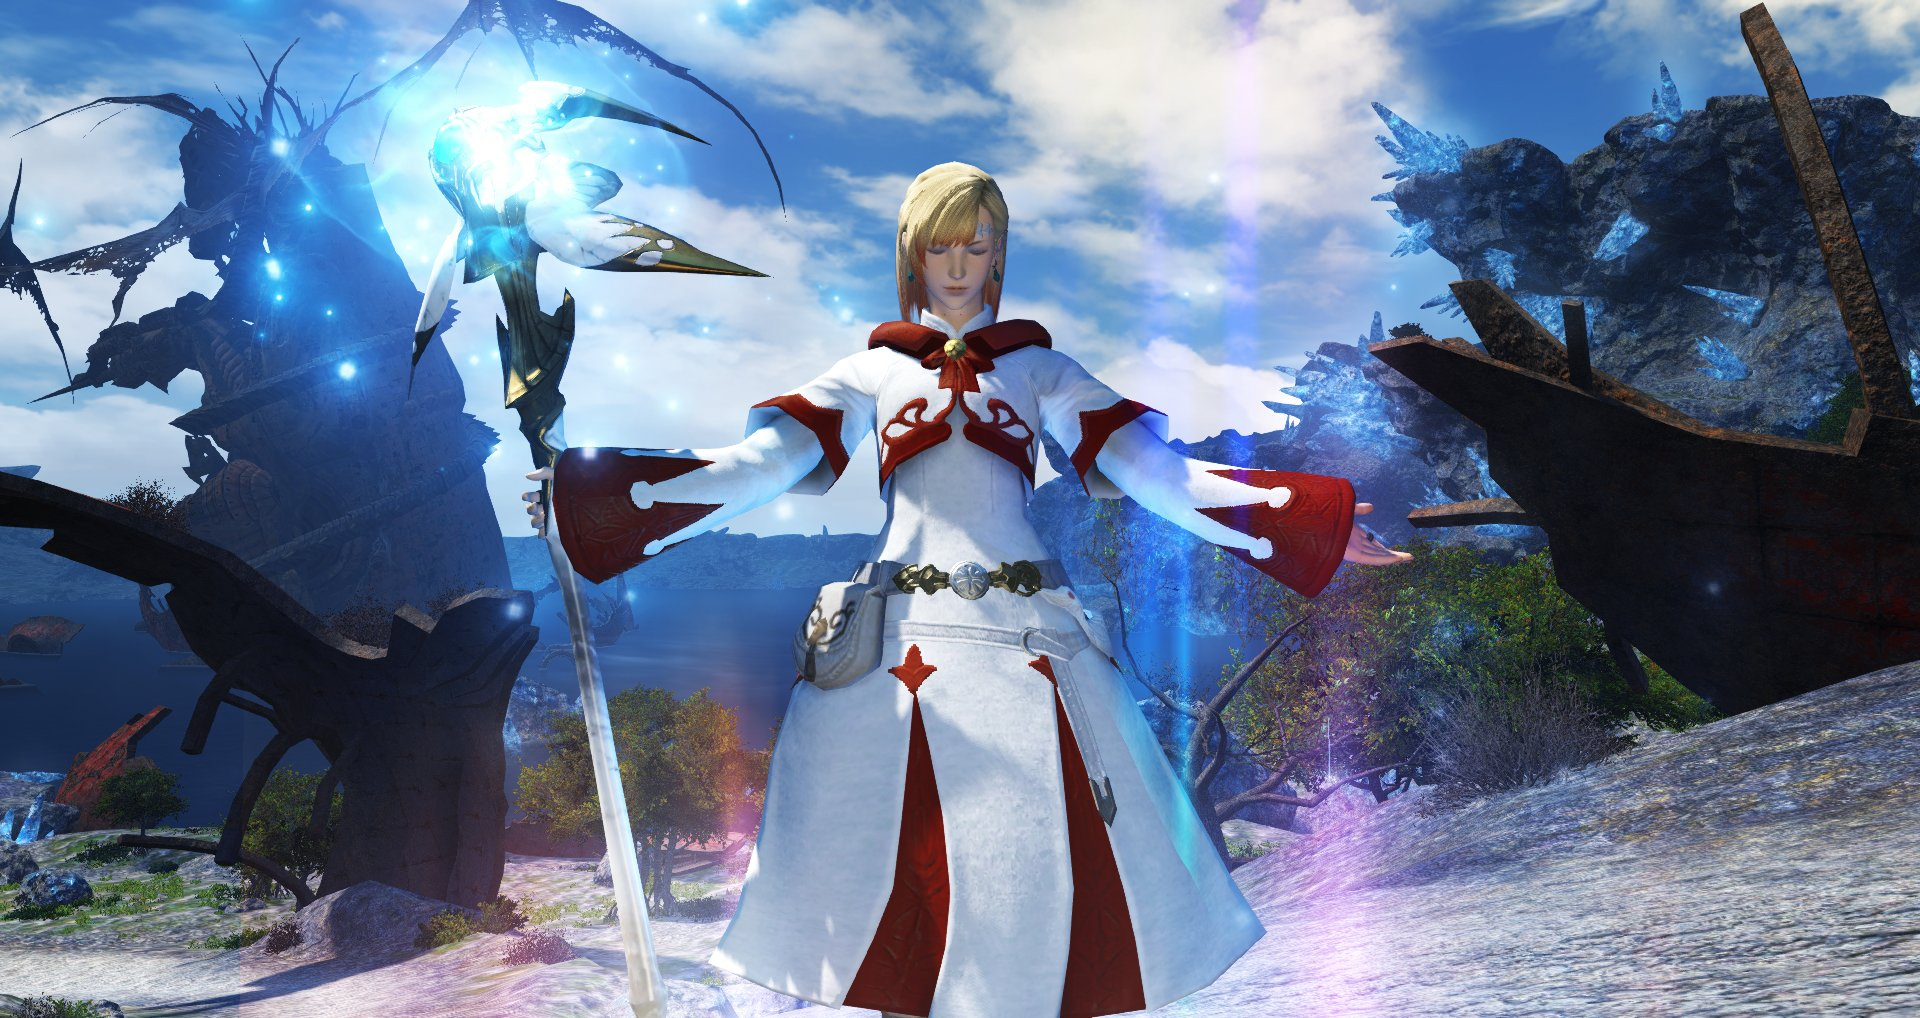 Square Enix joins Sony, cancels PAX East plans for Final Fantasy XIV screenshot